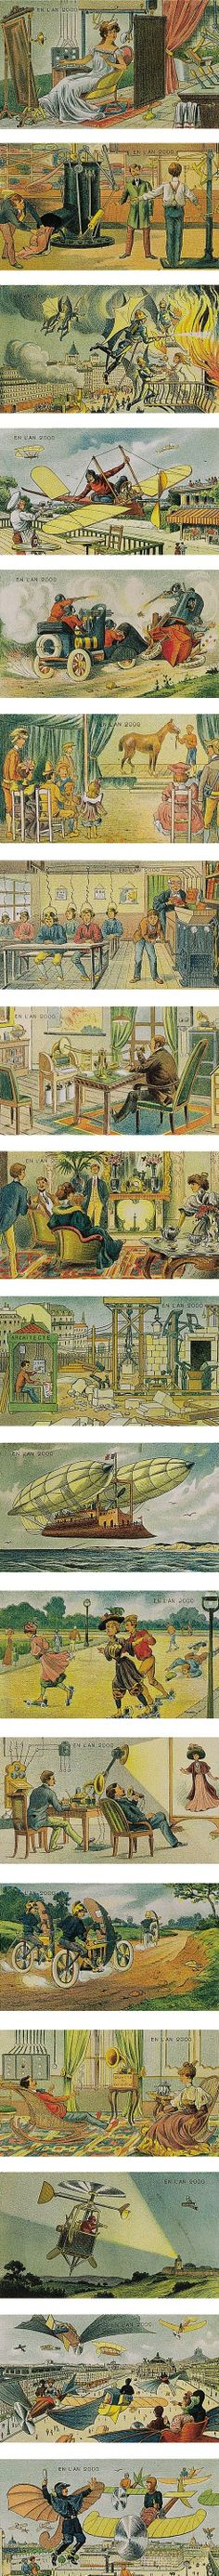 Year 2000, predicted in 1910